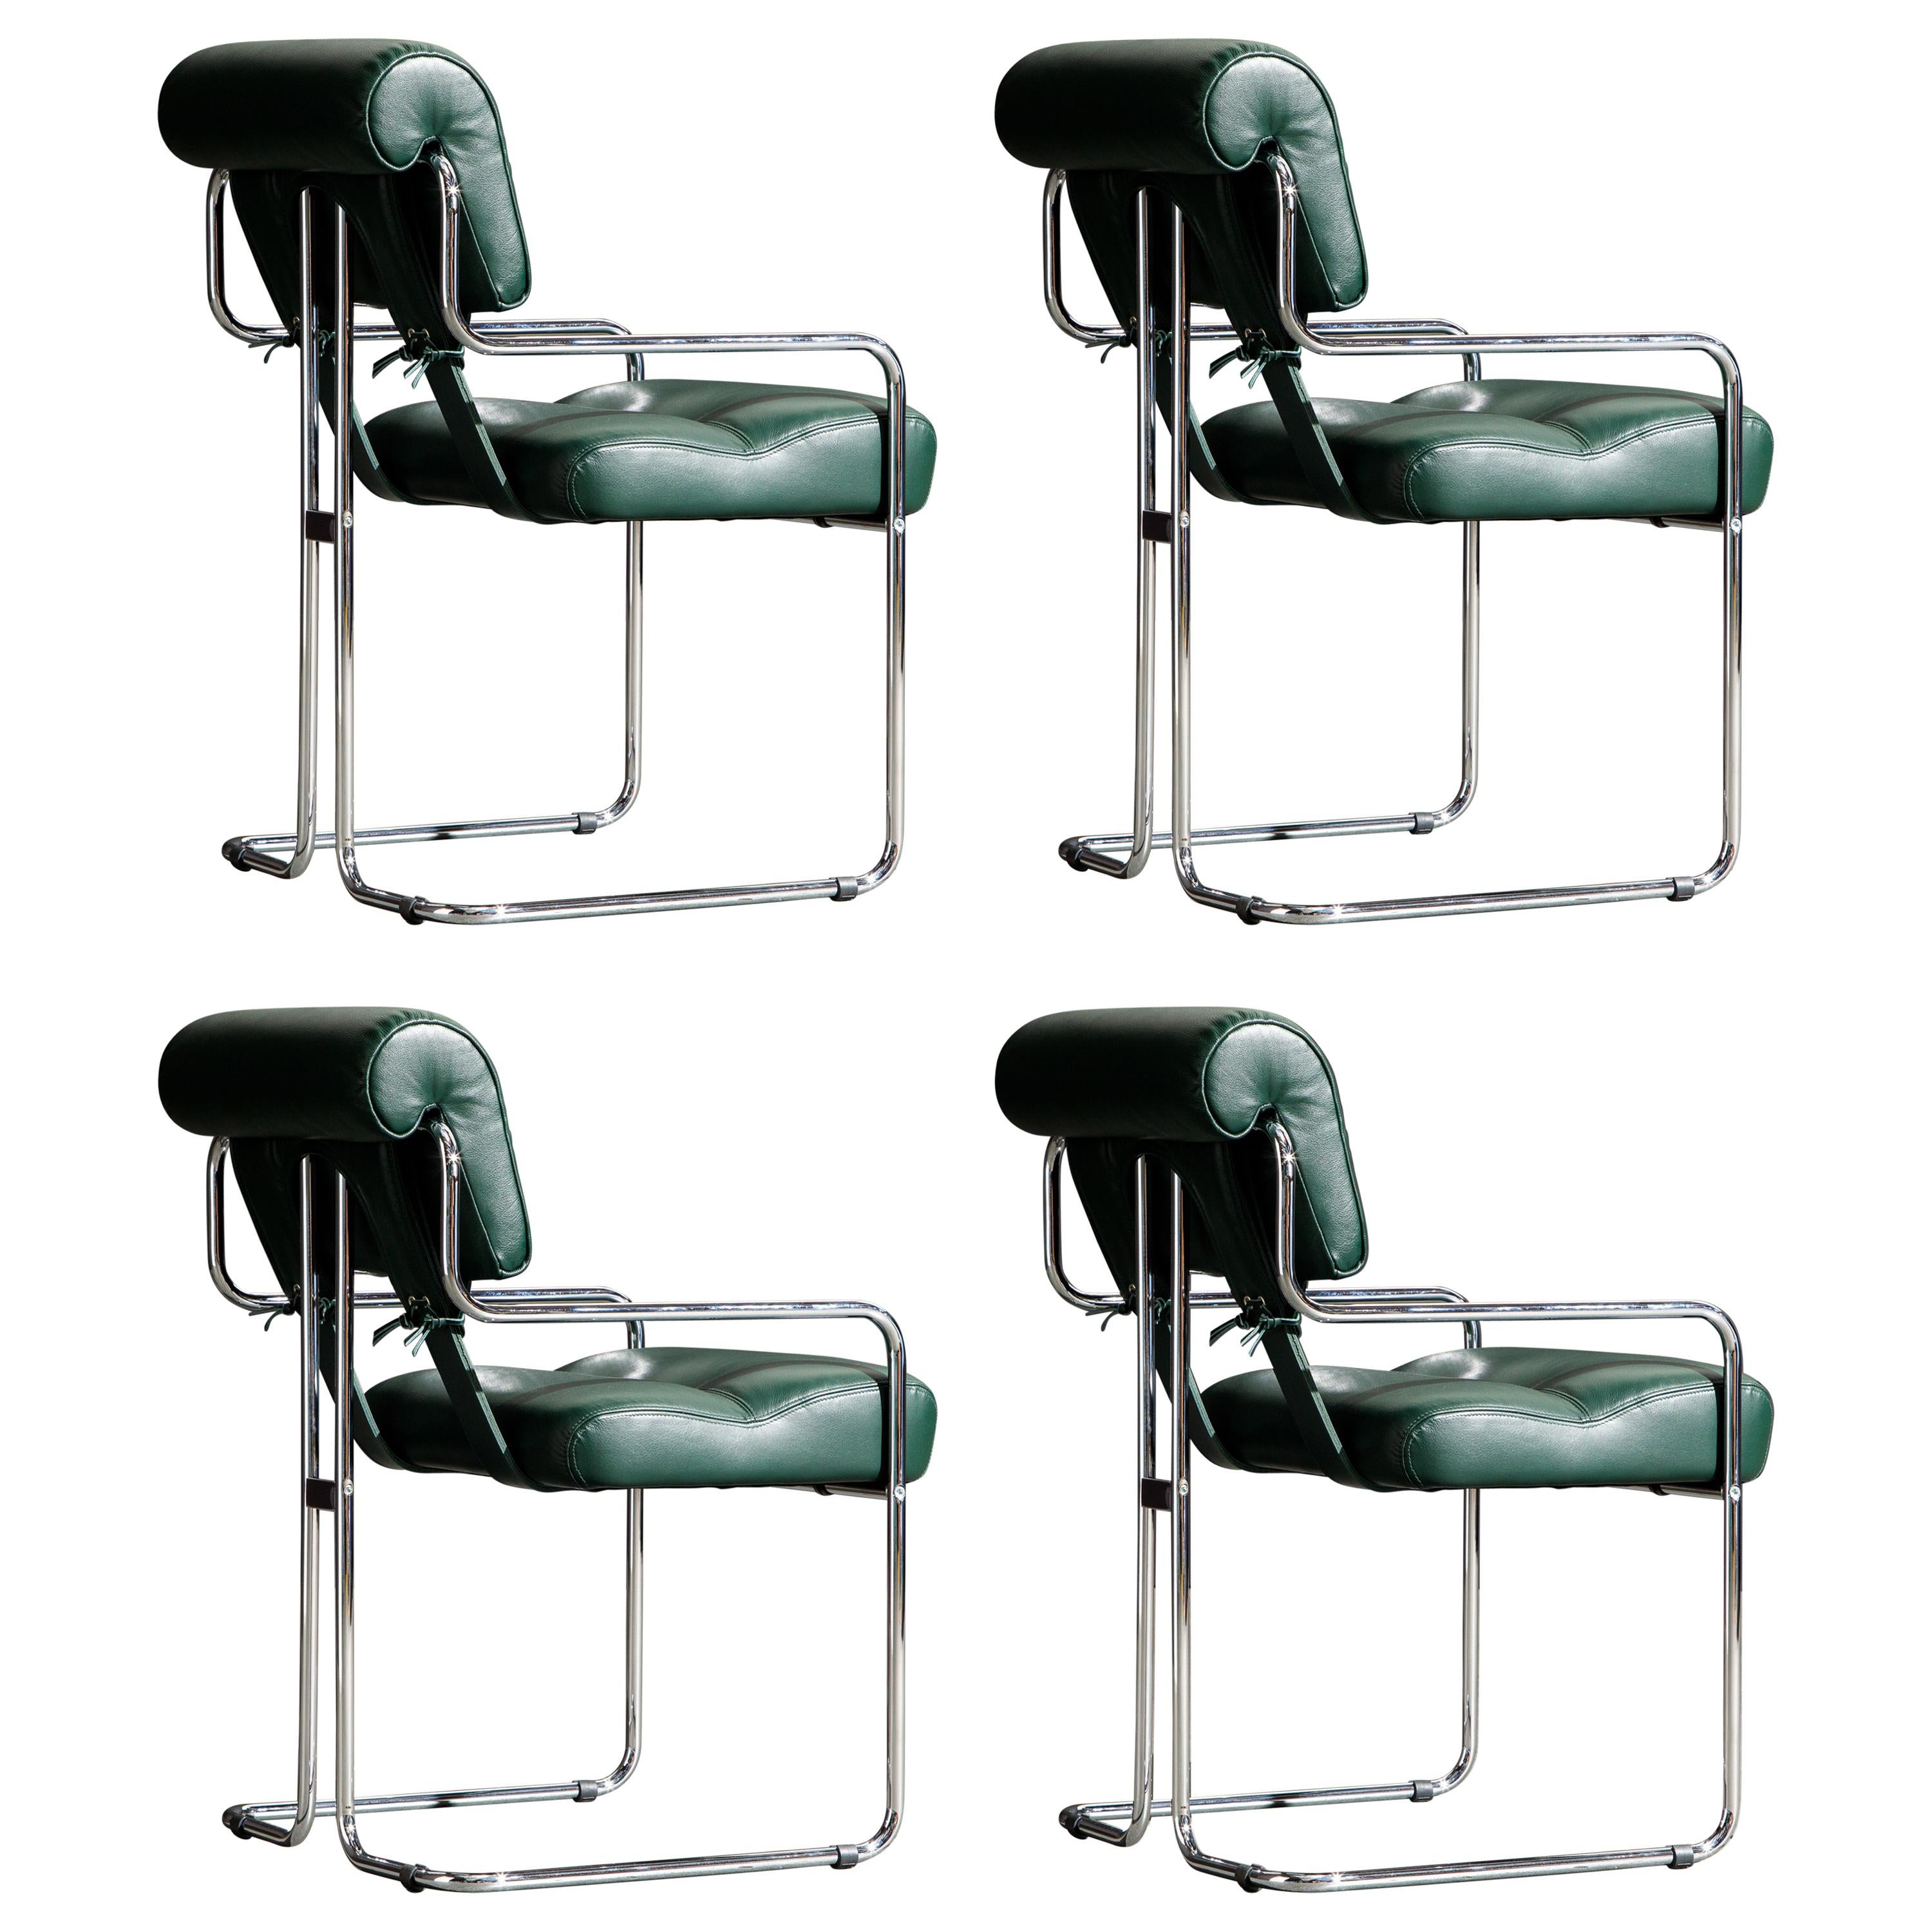 Set of Four Emerald Green Leather Tucroma Chairs by Guido Faleschini for Mariani